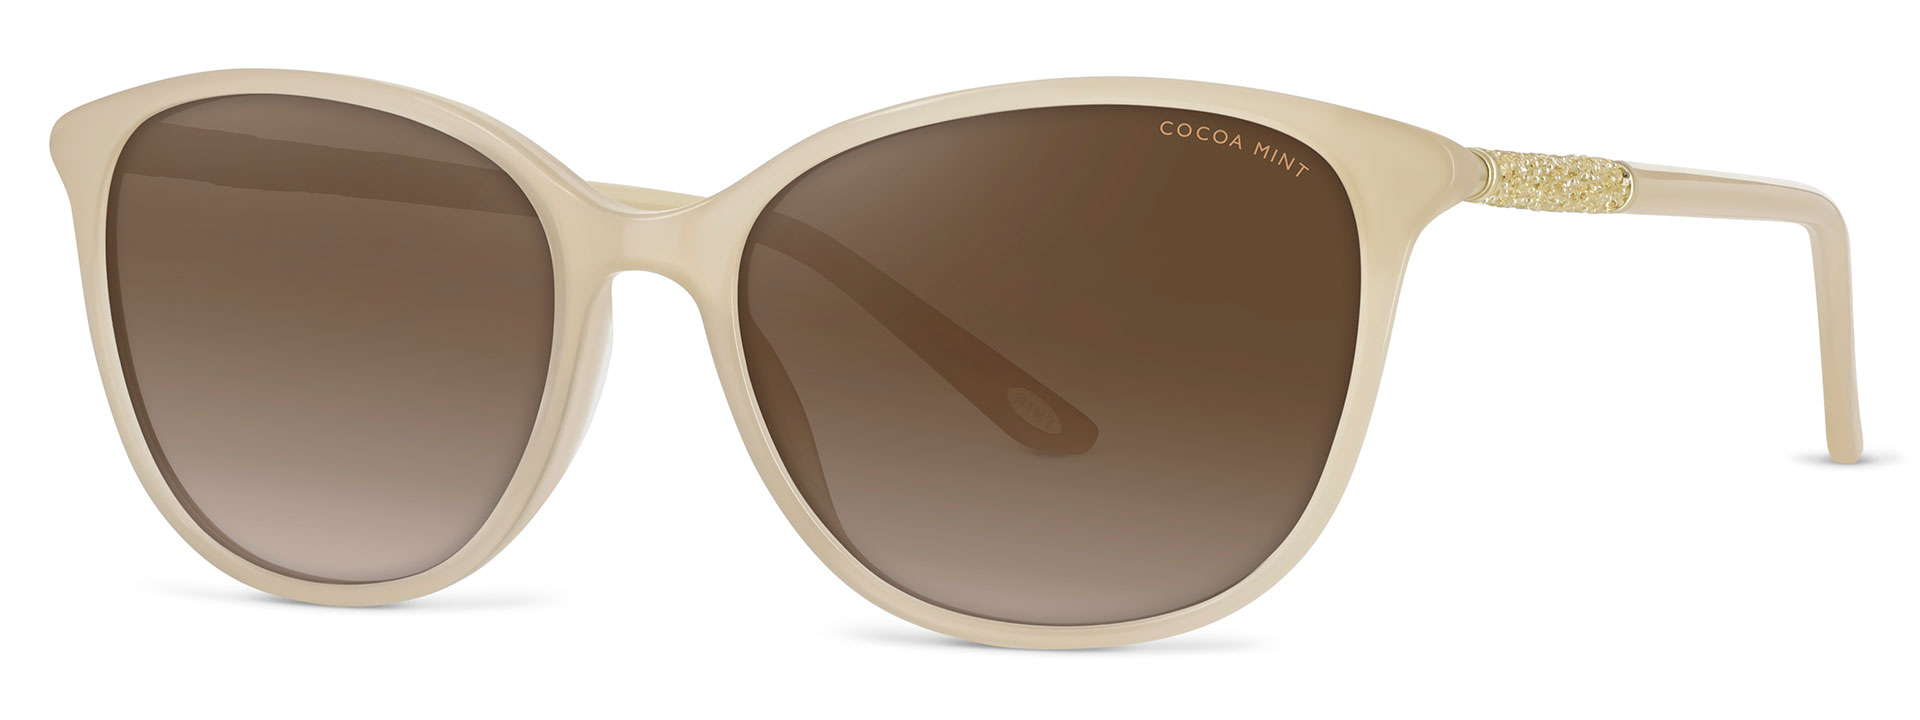 Cocoa Mint Sun Glasses - Nude - CMS2067-C1